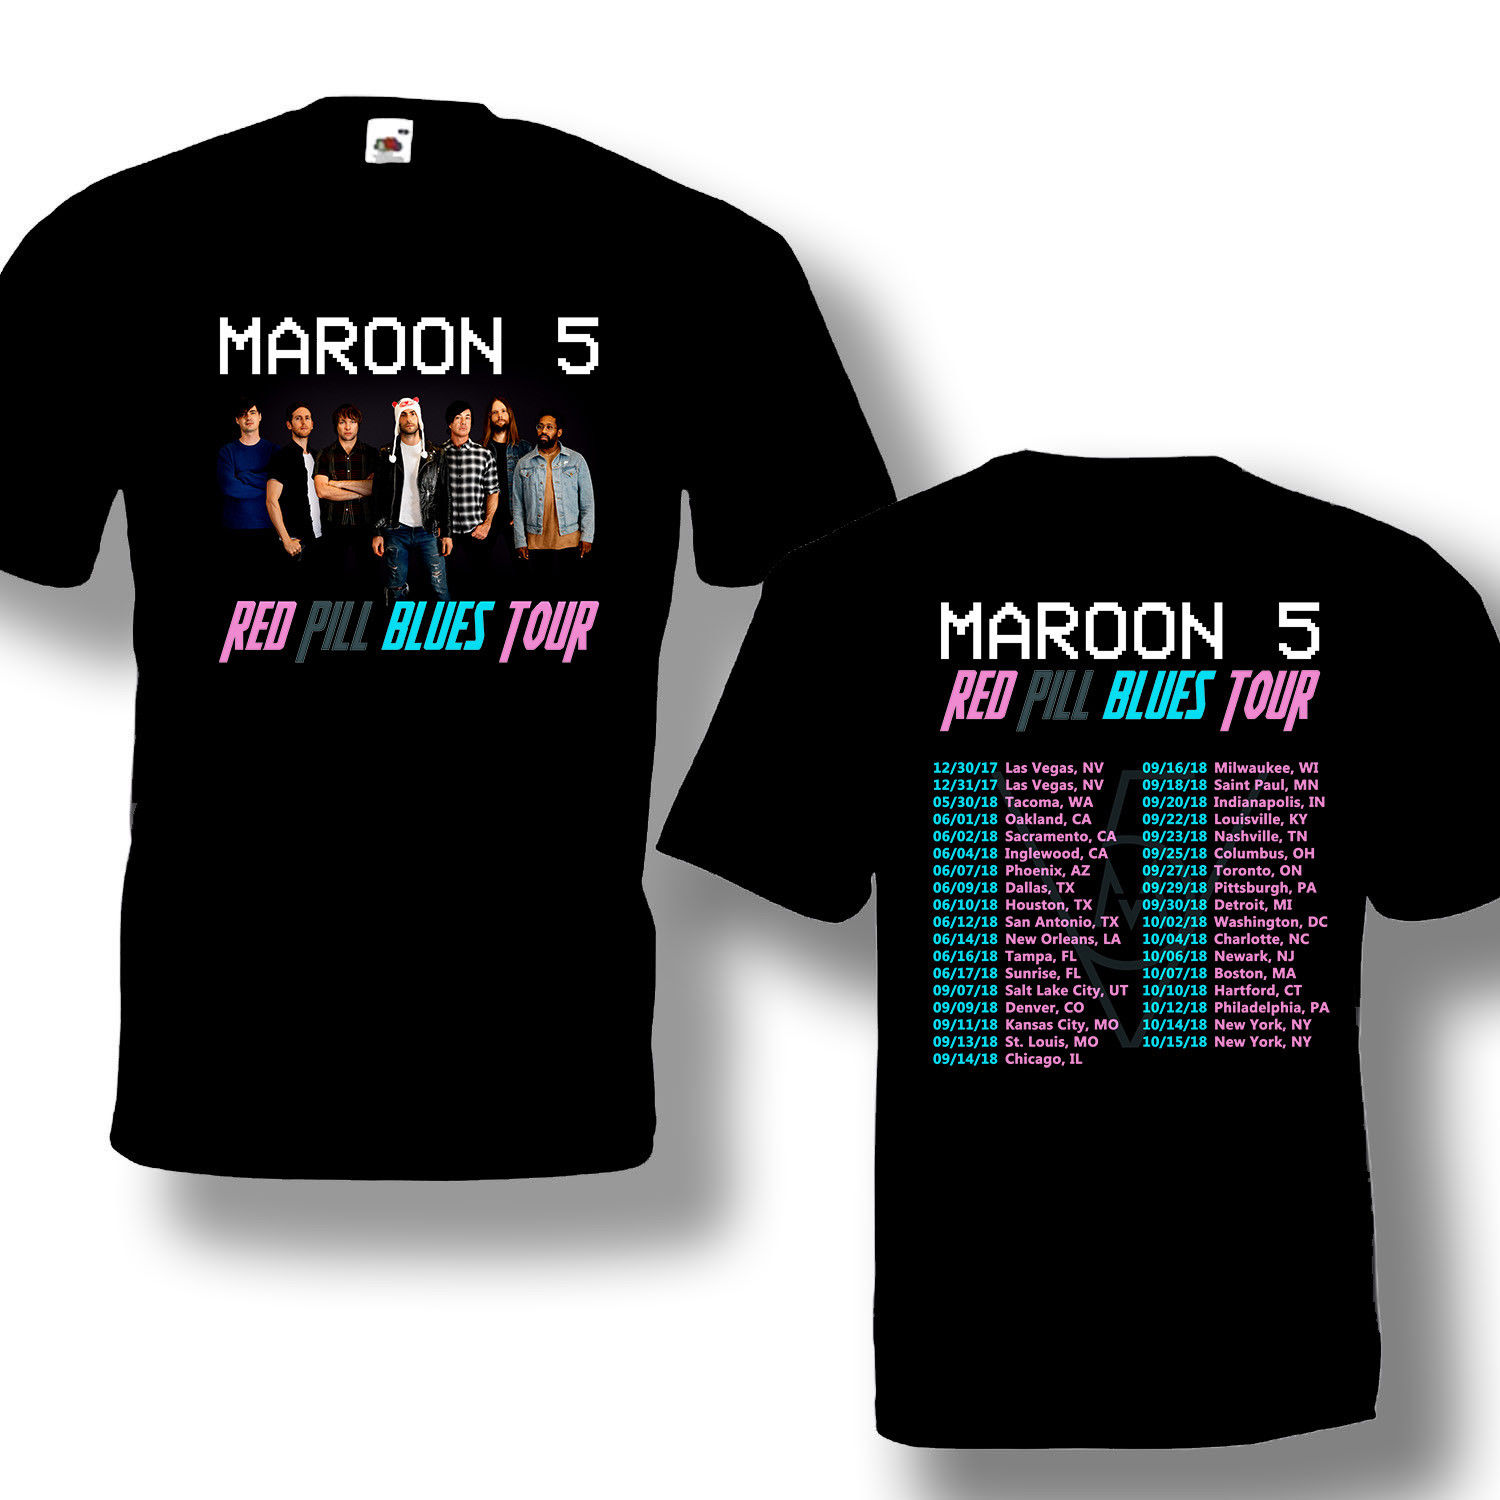 Men Short O Neck T Shirt Maroon 5 Tour 2018 Tshirt With Tour Date Black Color Hot Design For Sale ...